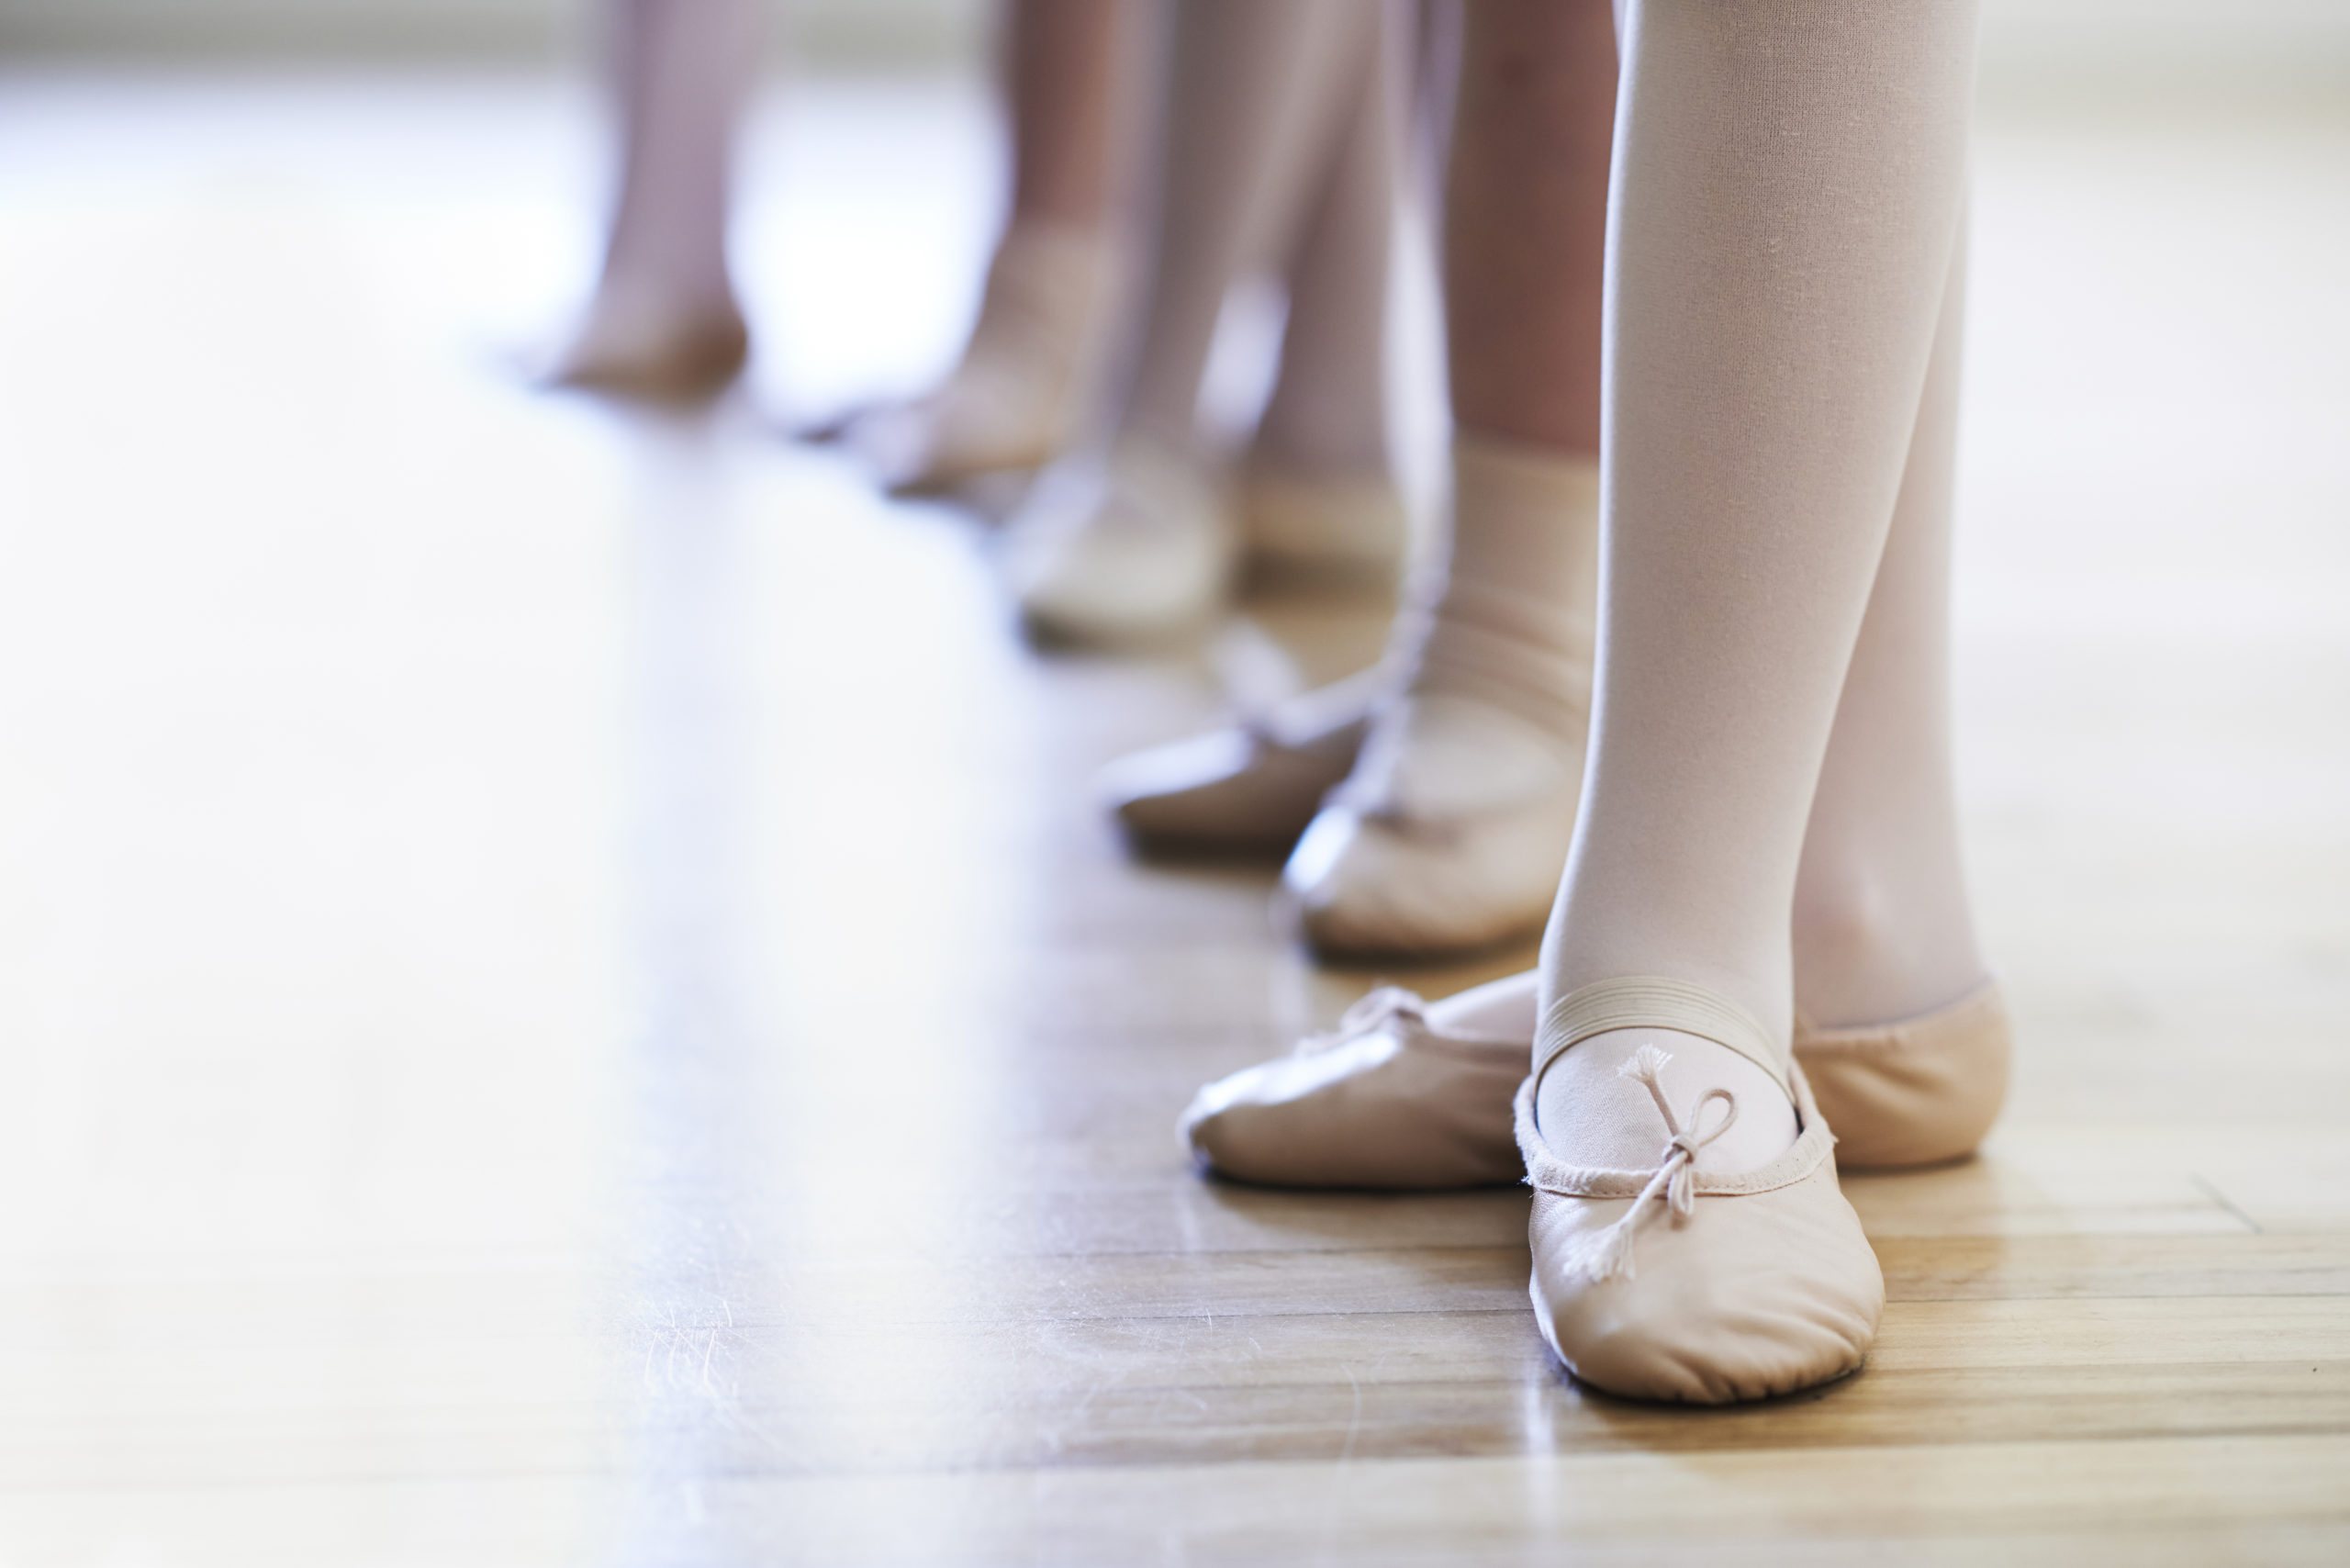 A close up of children's feet in ballet class. They wear pink tights and shoes, and are lined up in a row.